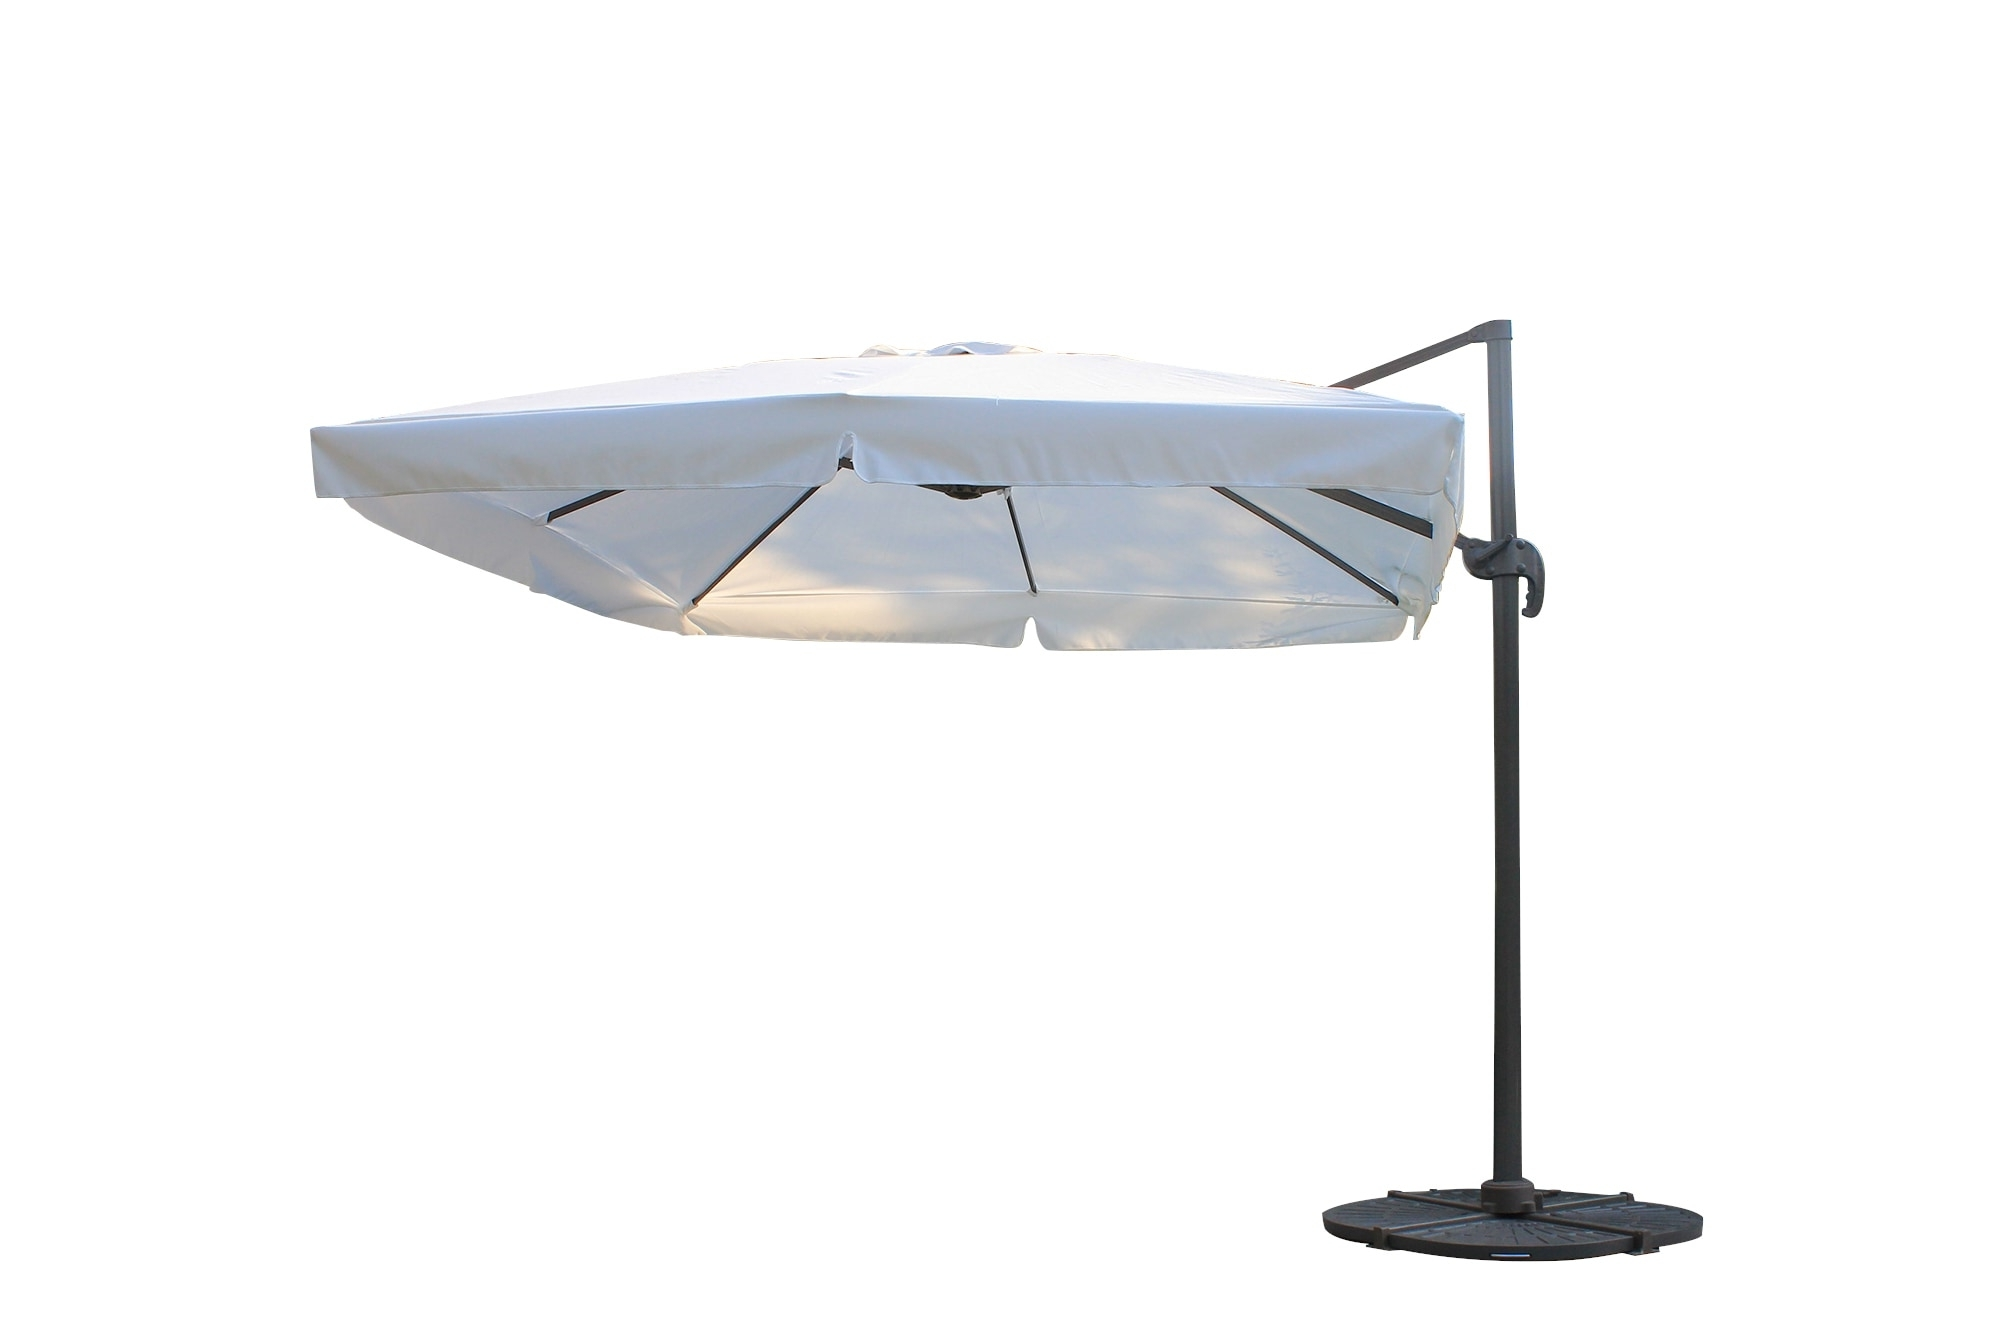 Square Patio Umbrellas Within Best And Newest Kontiki Shade & Cooling Offset Patio Umbrellas 10 Ft Square Offset (View 18 of 20)